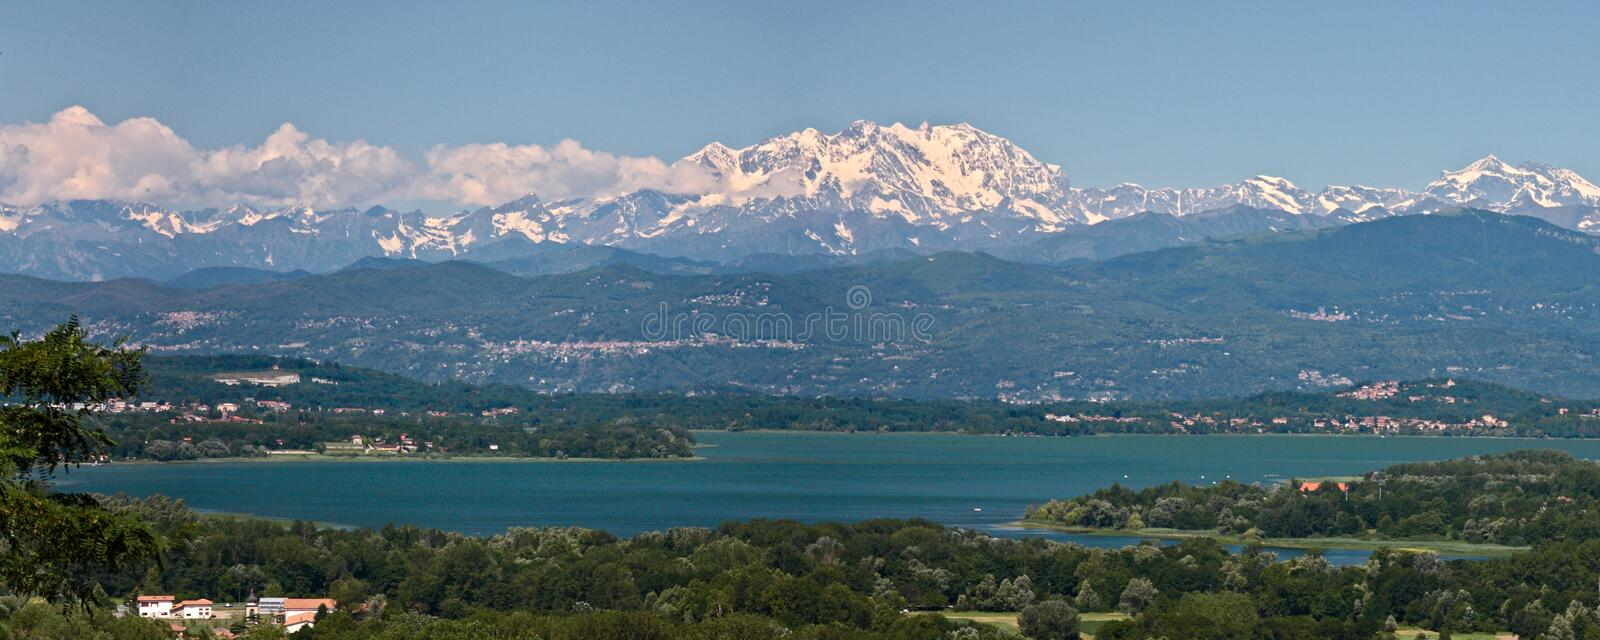 View of Lake Varese with the Alps royalty free stock photo